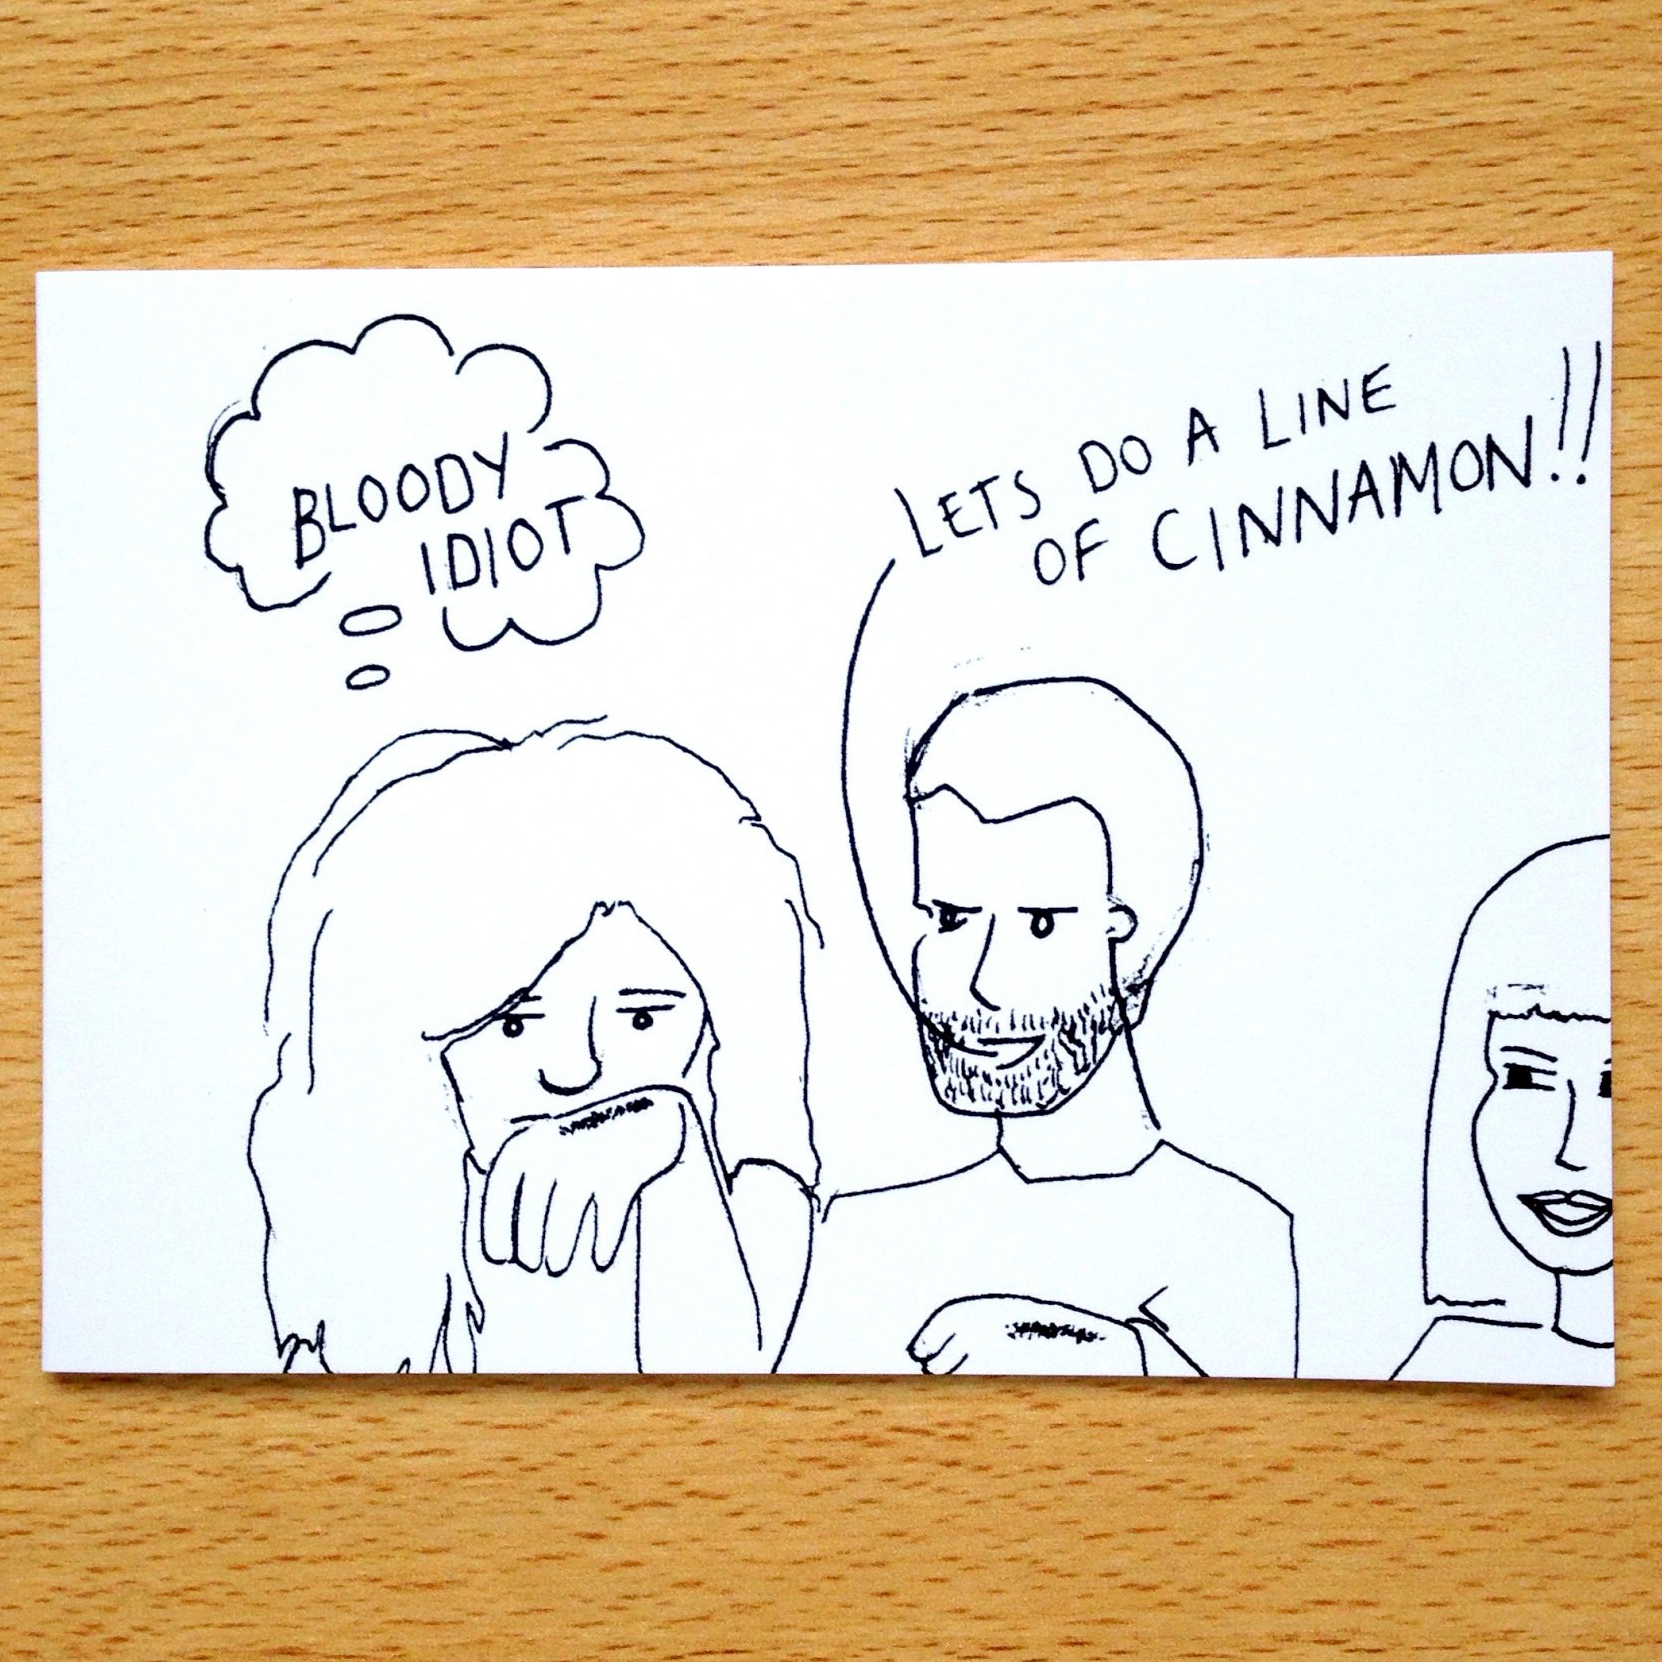 Let's Do A Line Of Cinnamon